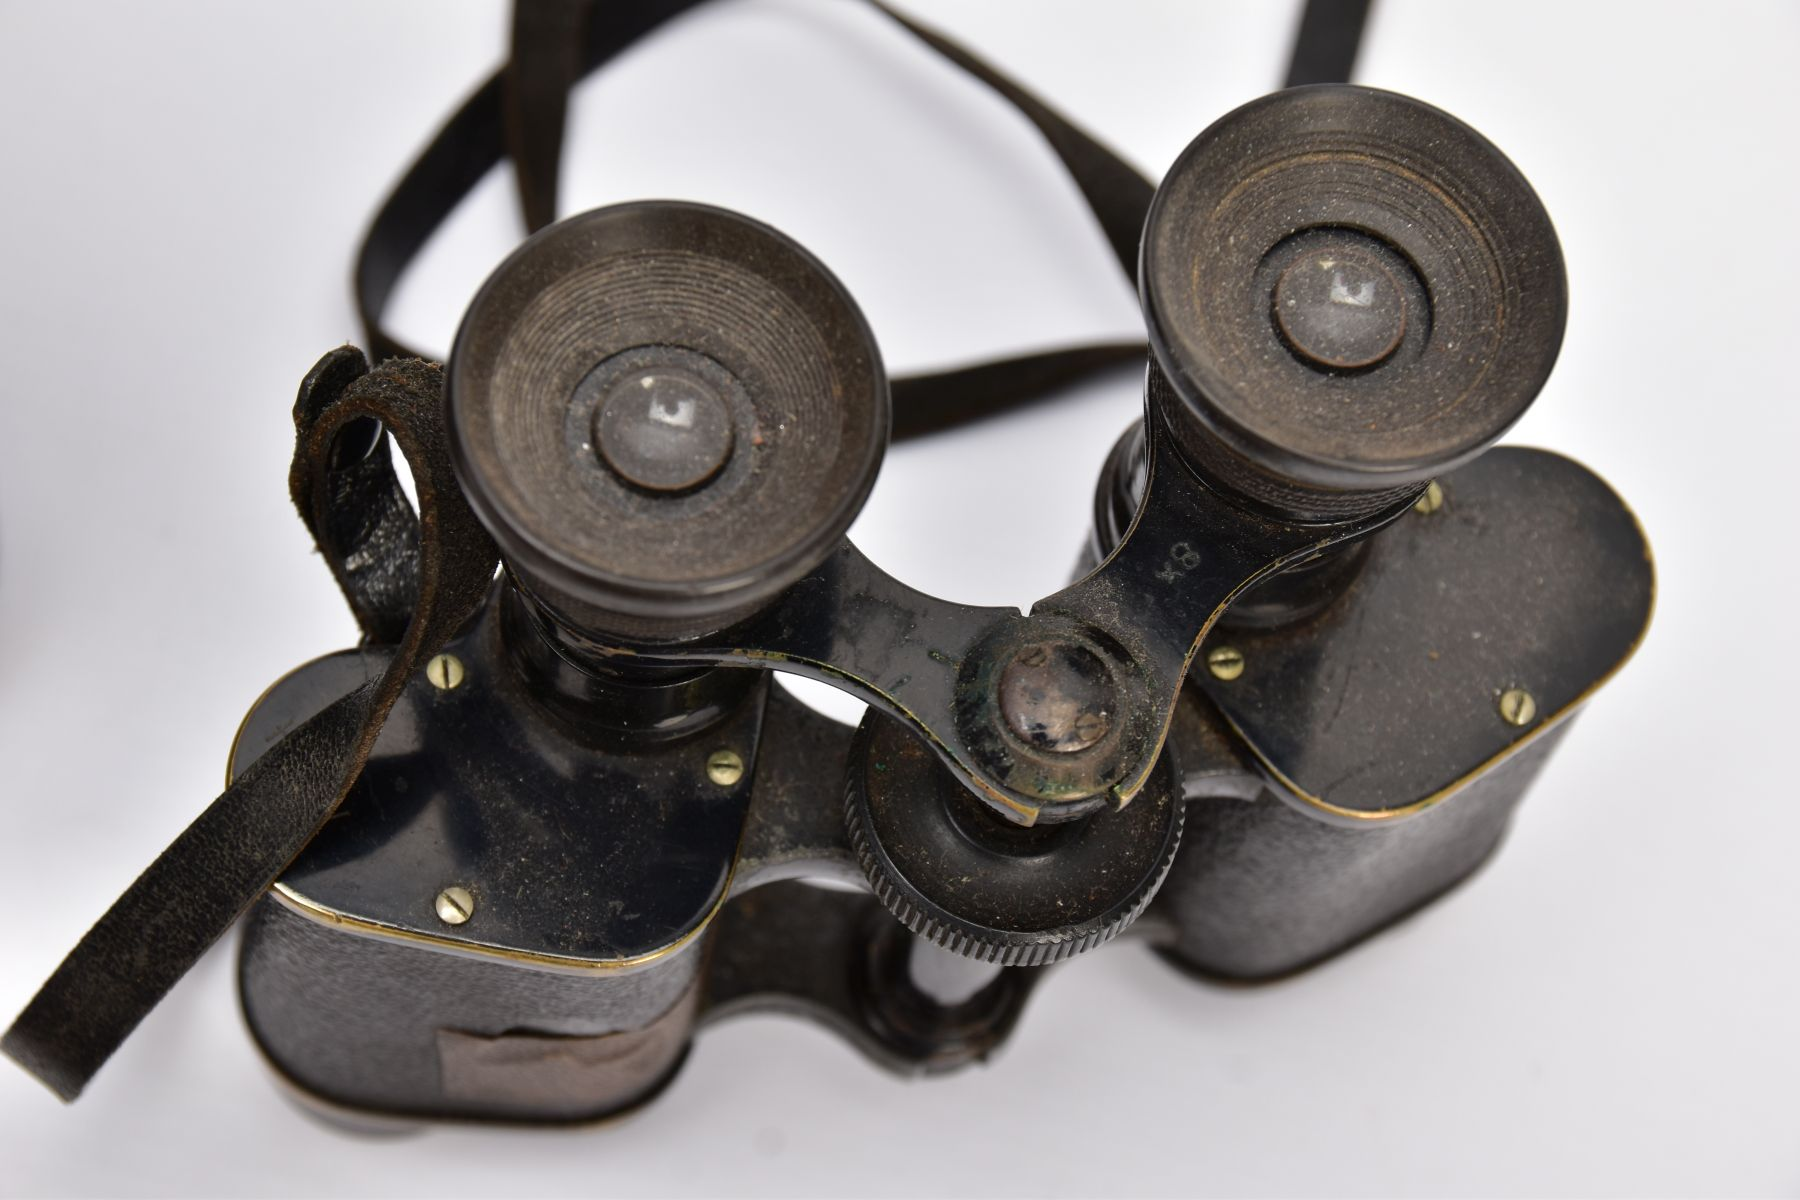 TWO BOXED PAIRS OF MILITARY BINOCULARS, one box marked Bino prism No.5 MKI, the other pair is crow - Image 5 of 8